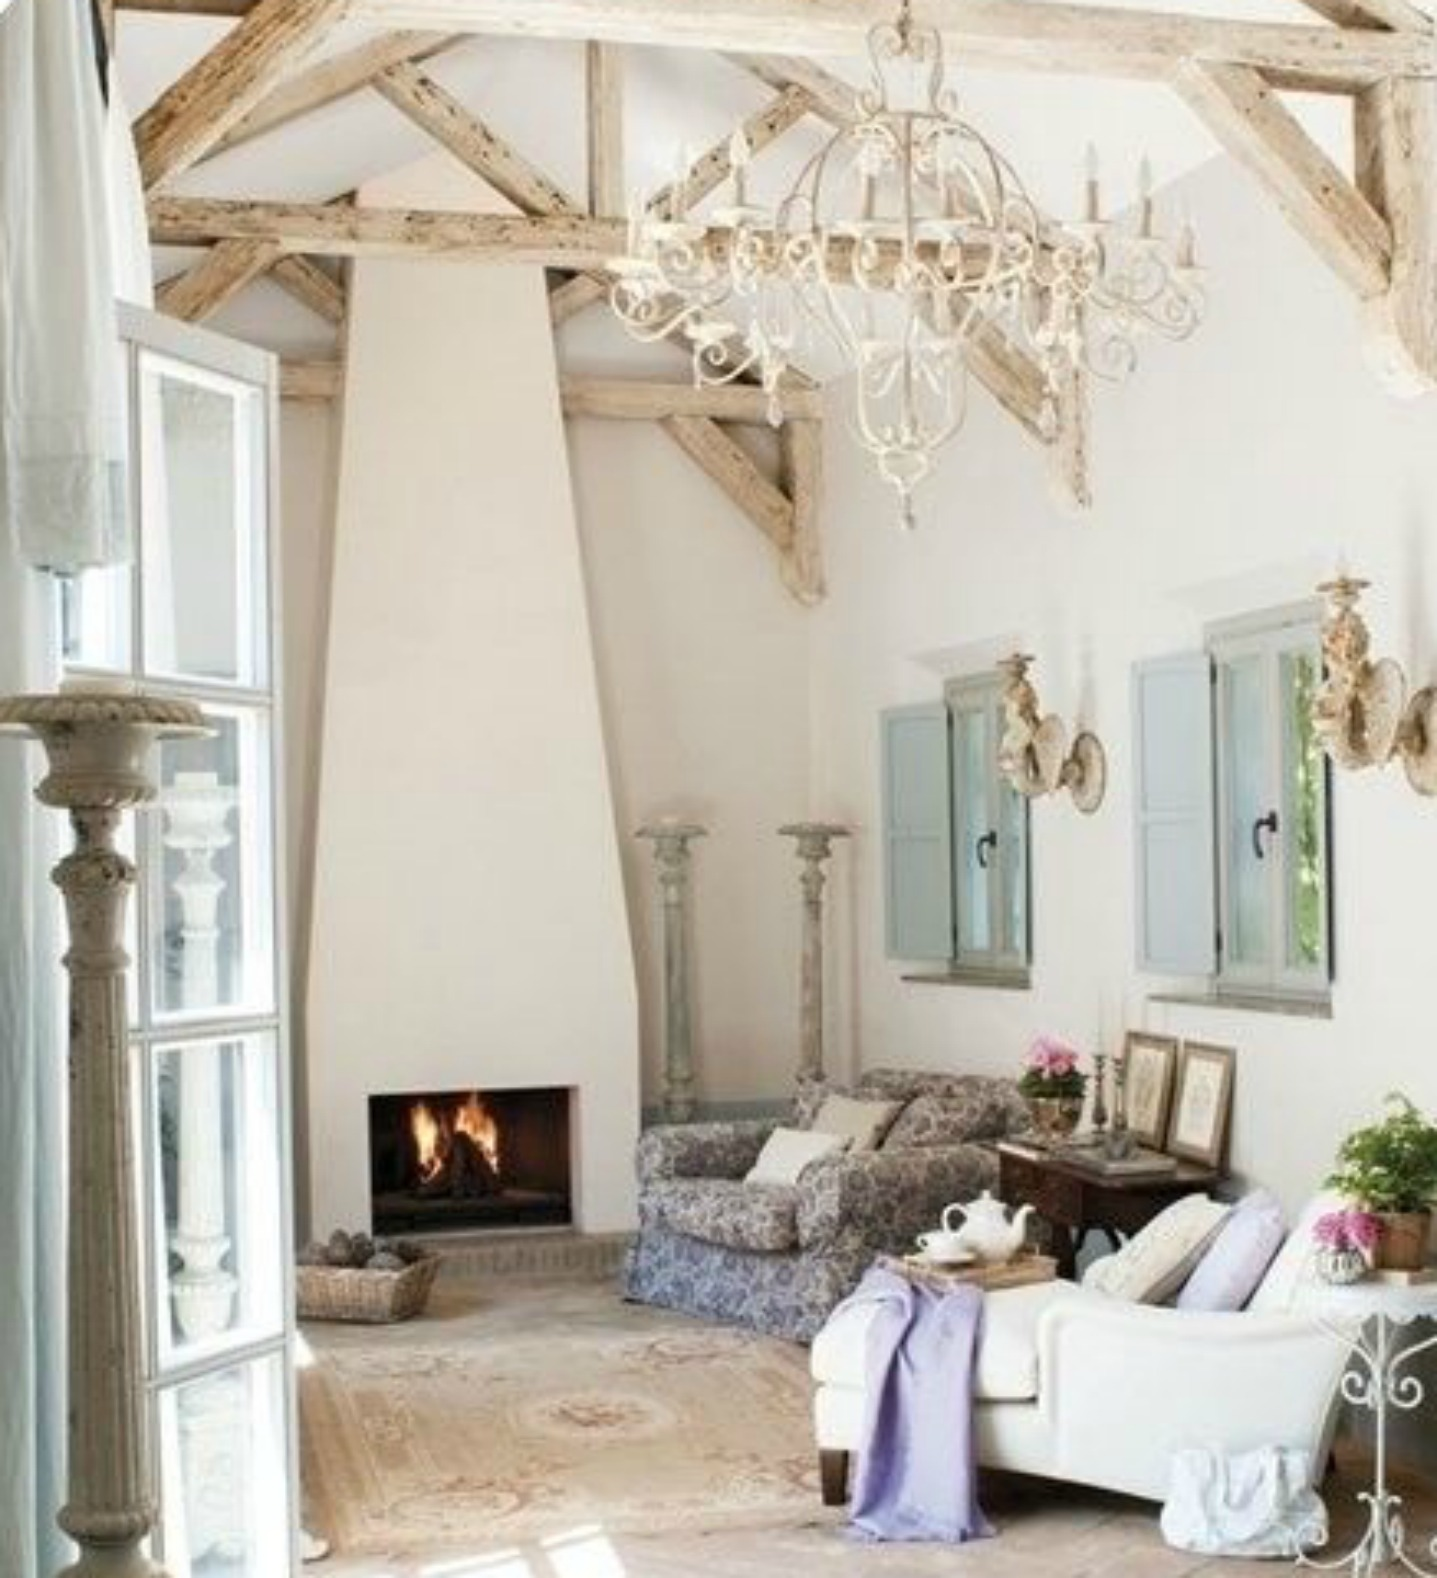 23 European And French Farmhouse Decor Ideas To Inspire